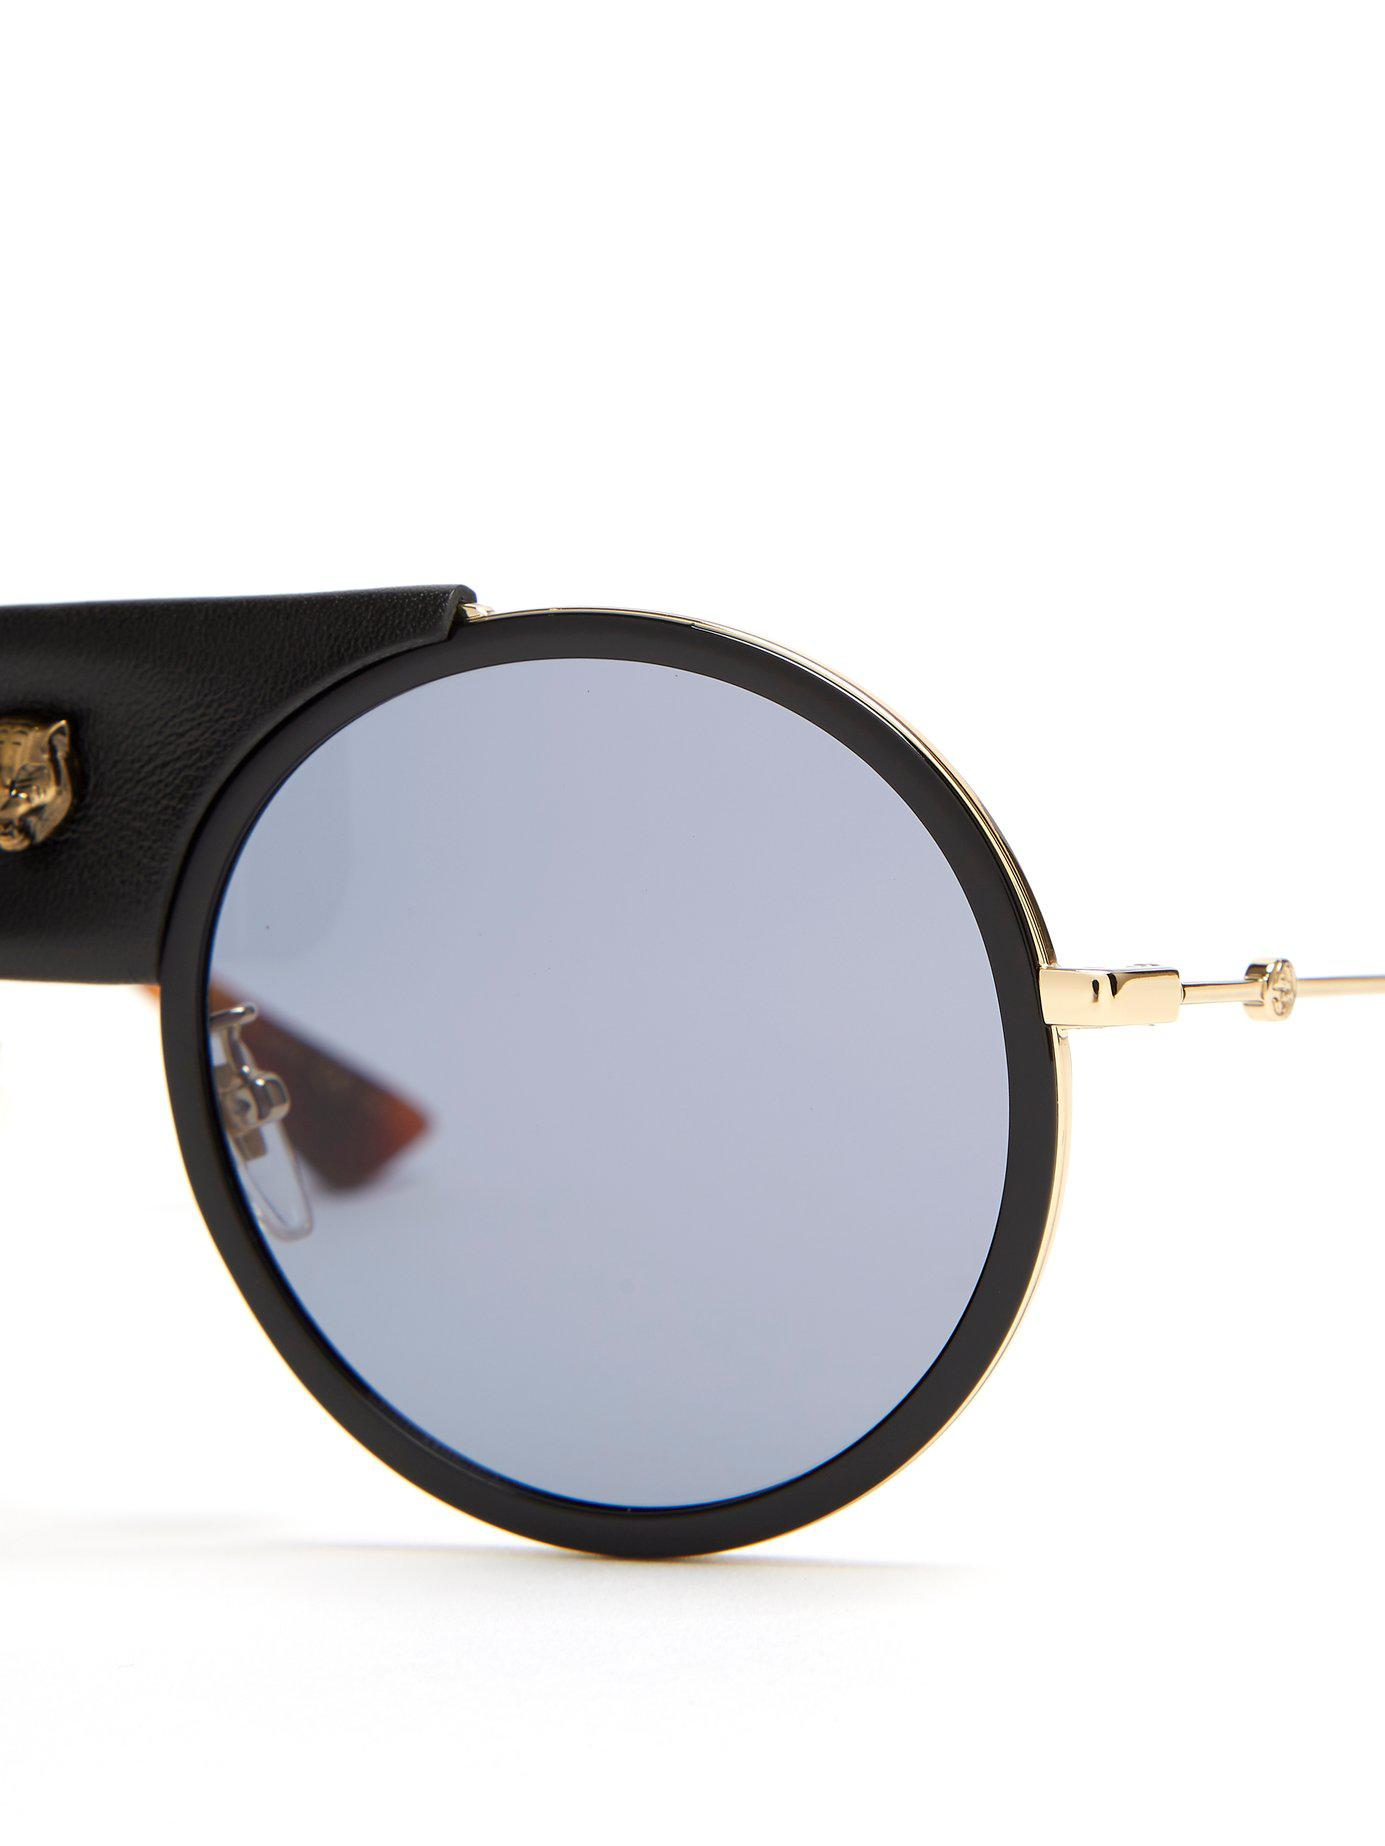 68c06646ecd Lyst gucci round frame leather trimmed metal sunglasses in black jpg  1385x1846 Leather gucci eyeglasses